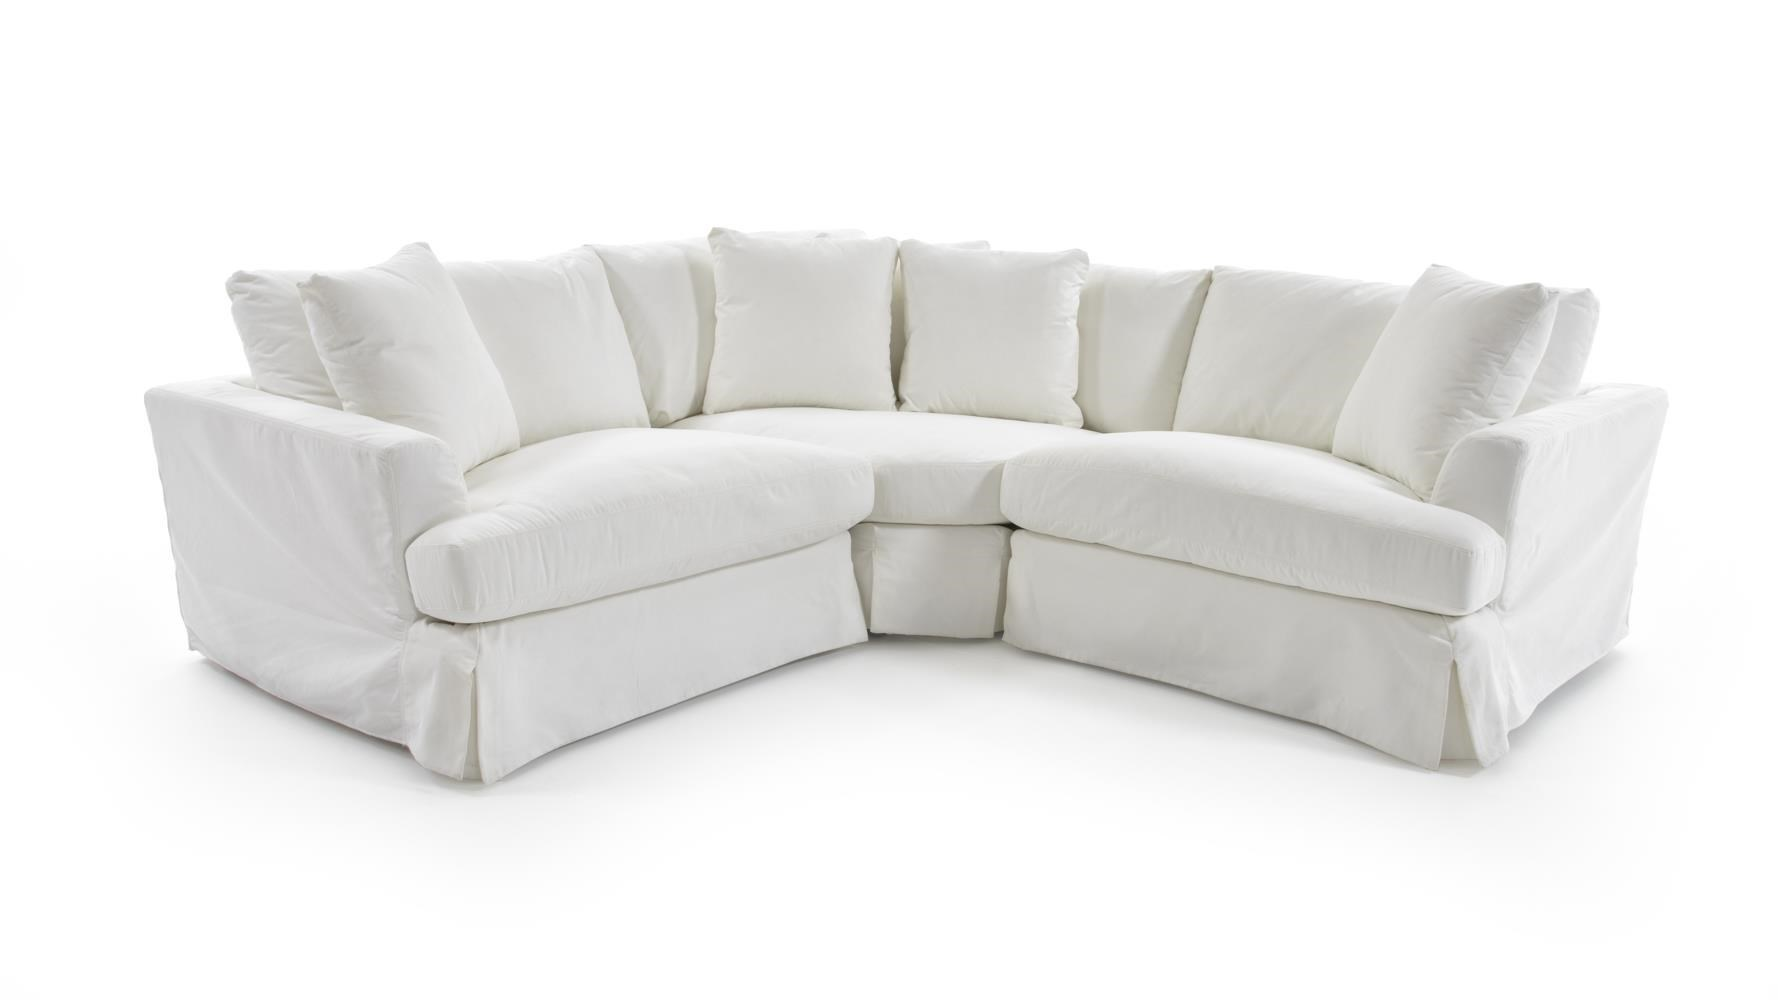 Synergy Home Furnishings 1300 1300 31+64+32 PEARL Three Piece Corner  Sectional Sofa With Slipcover